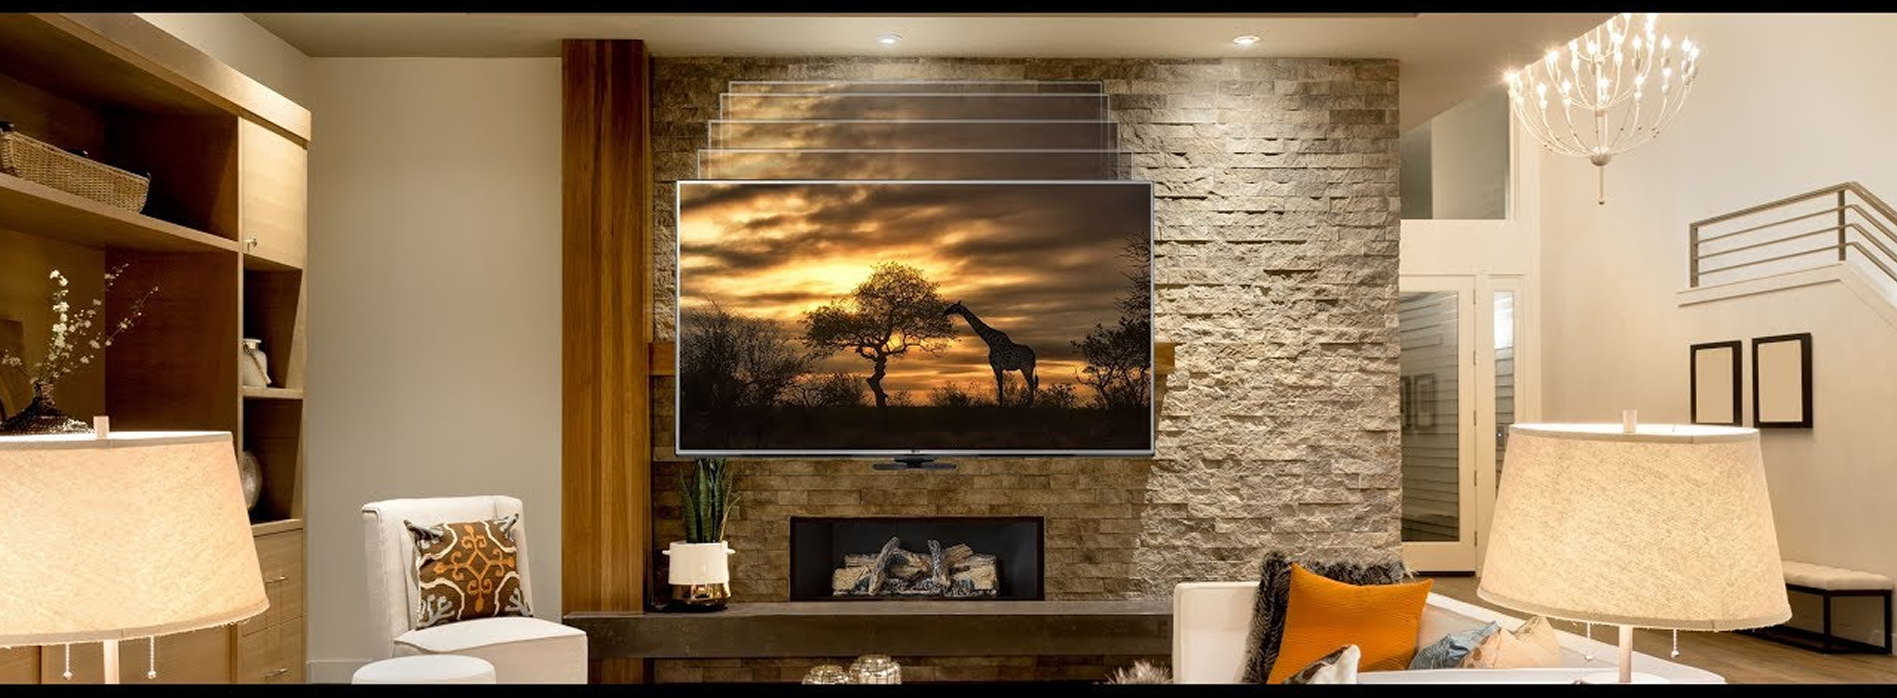 Fireplace TV Installation New Jersey